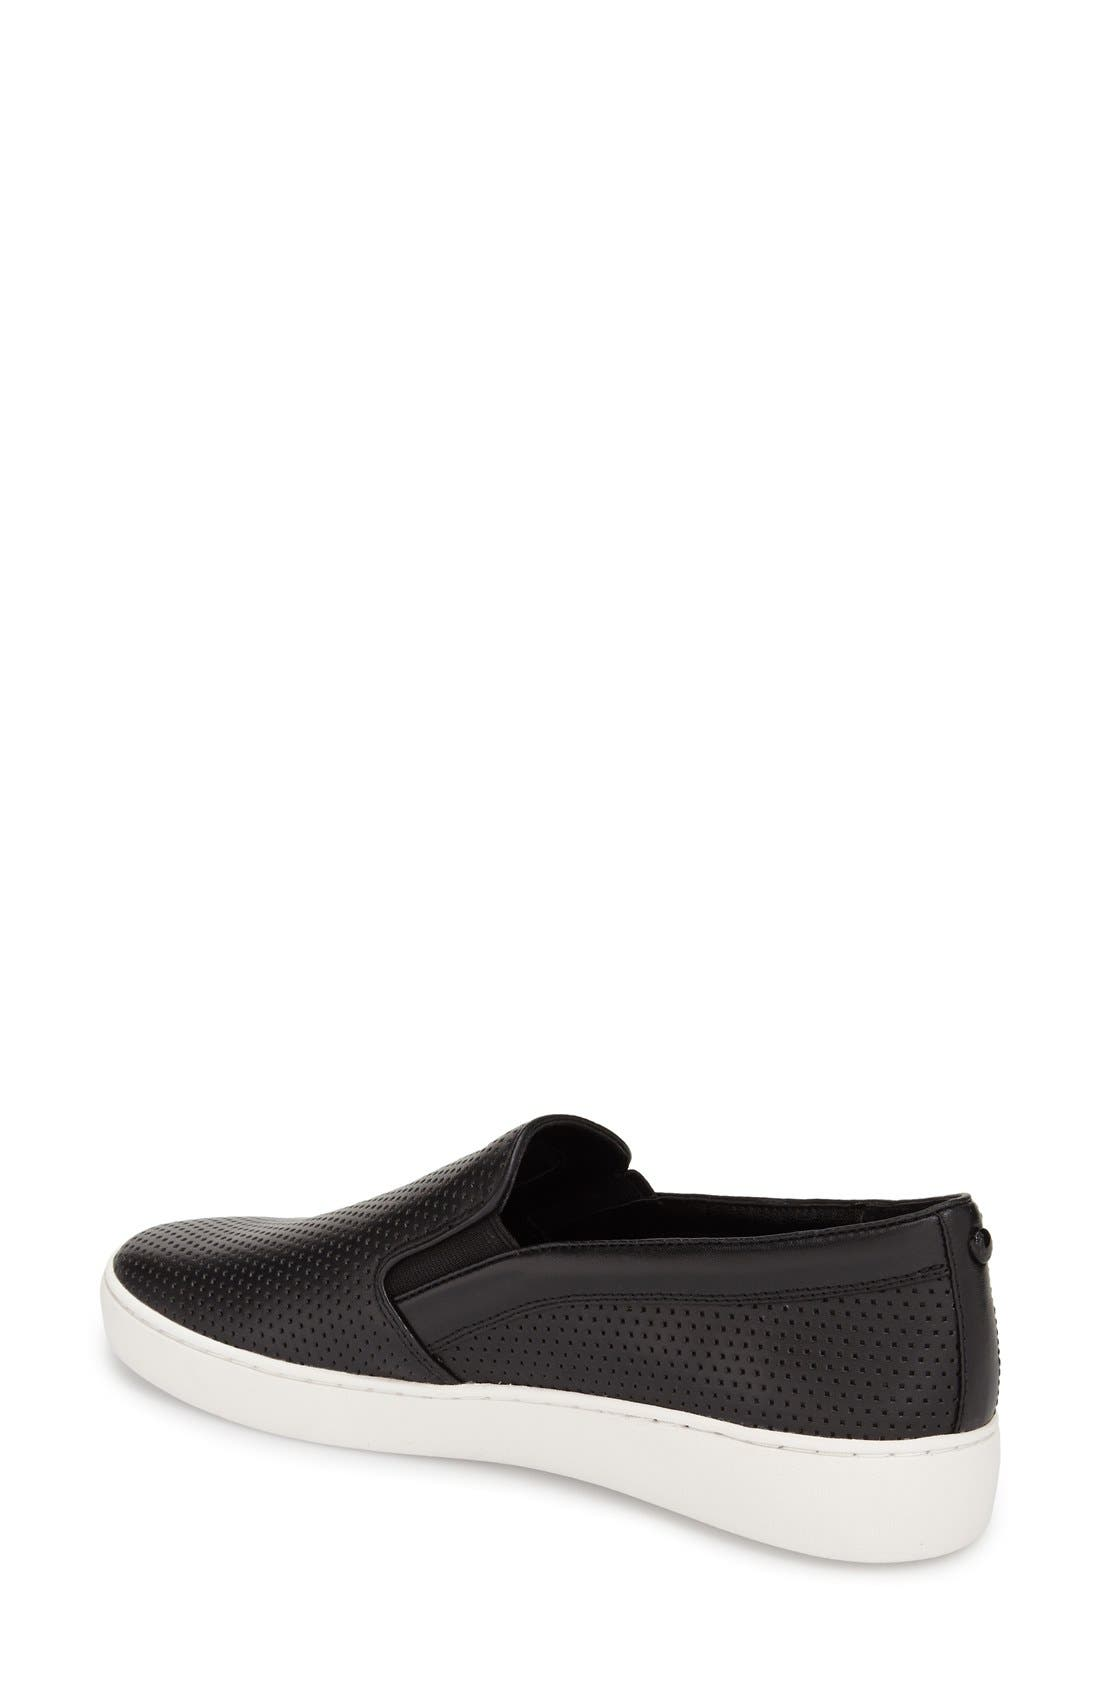 Keaton Slip-On Sneaker,                             Alternate thumbnail 63, color,